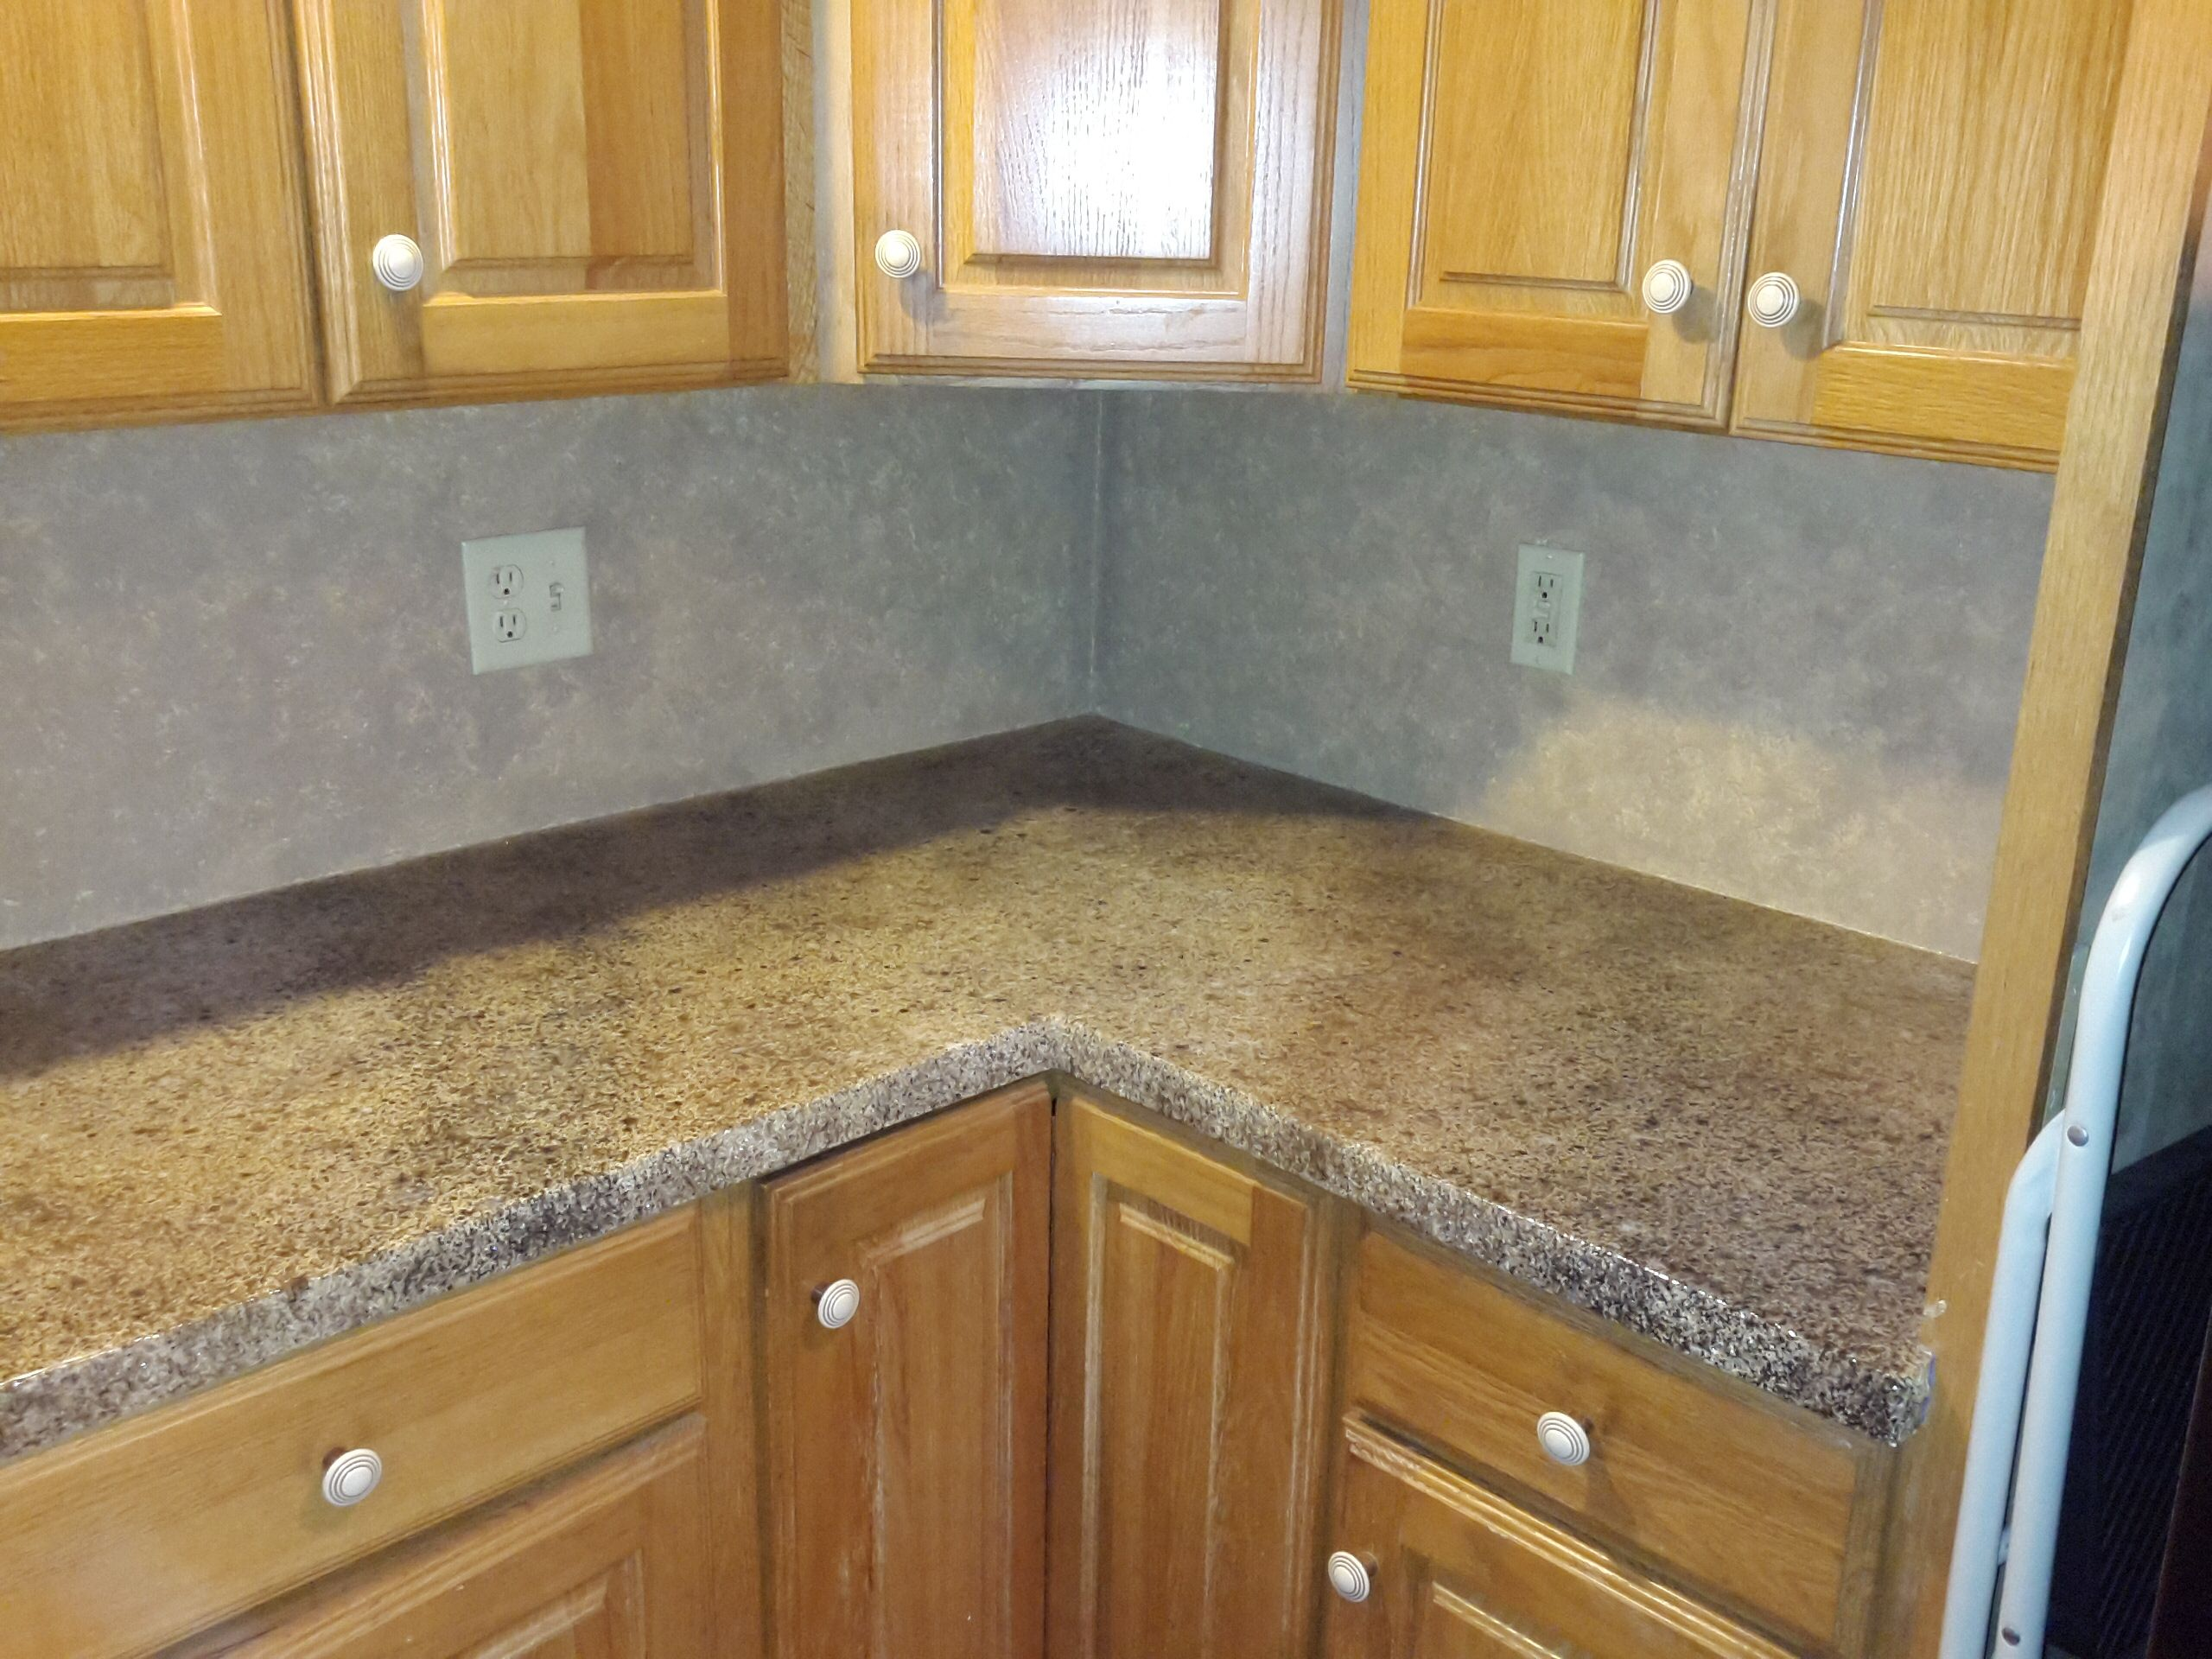 Formica Countertop No Backsplash Google Search Laminate